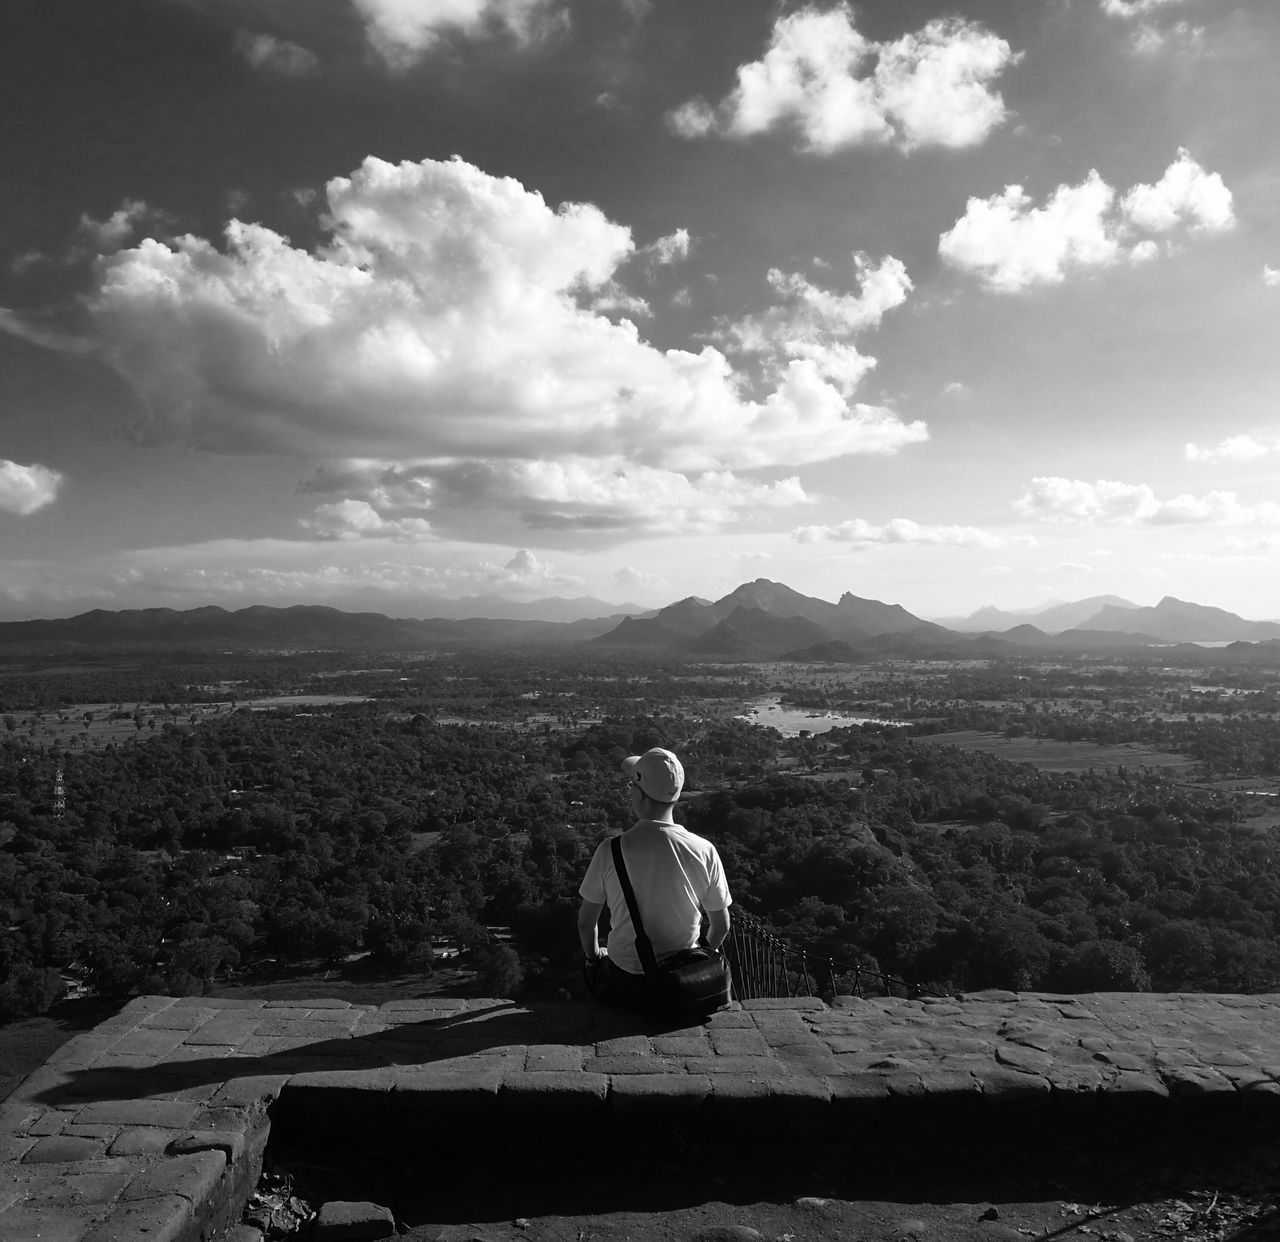 sitting, real people, mountain, one person, sky, nature, cloud - sky, day, outdoors, lifestyles, scenics, beauty in nature, men, full length, landscape, retaining wall, young adult, people